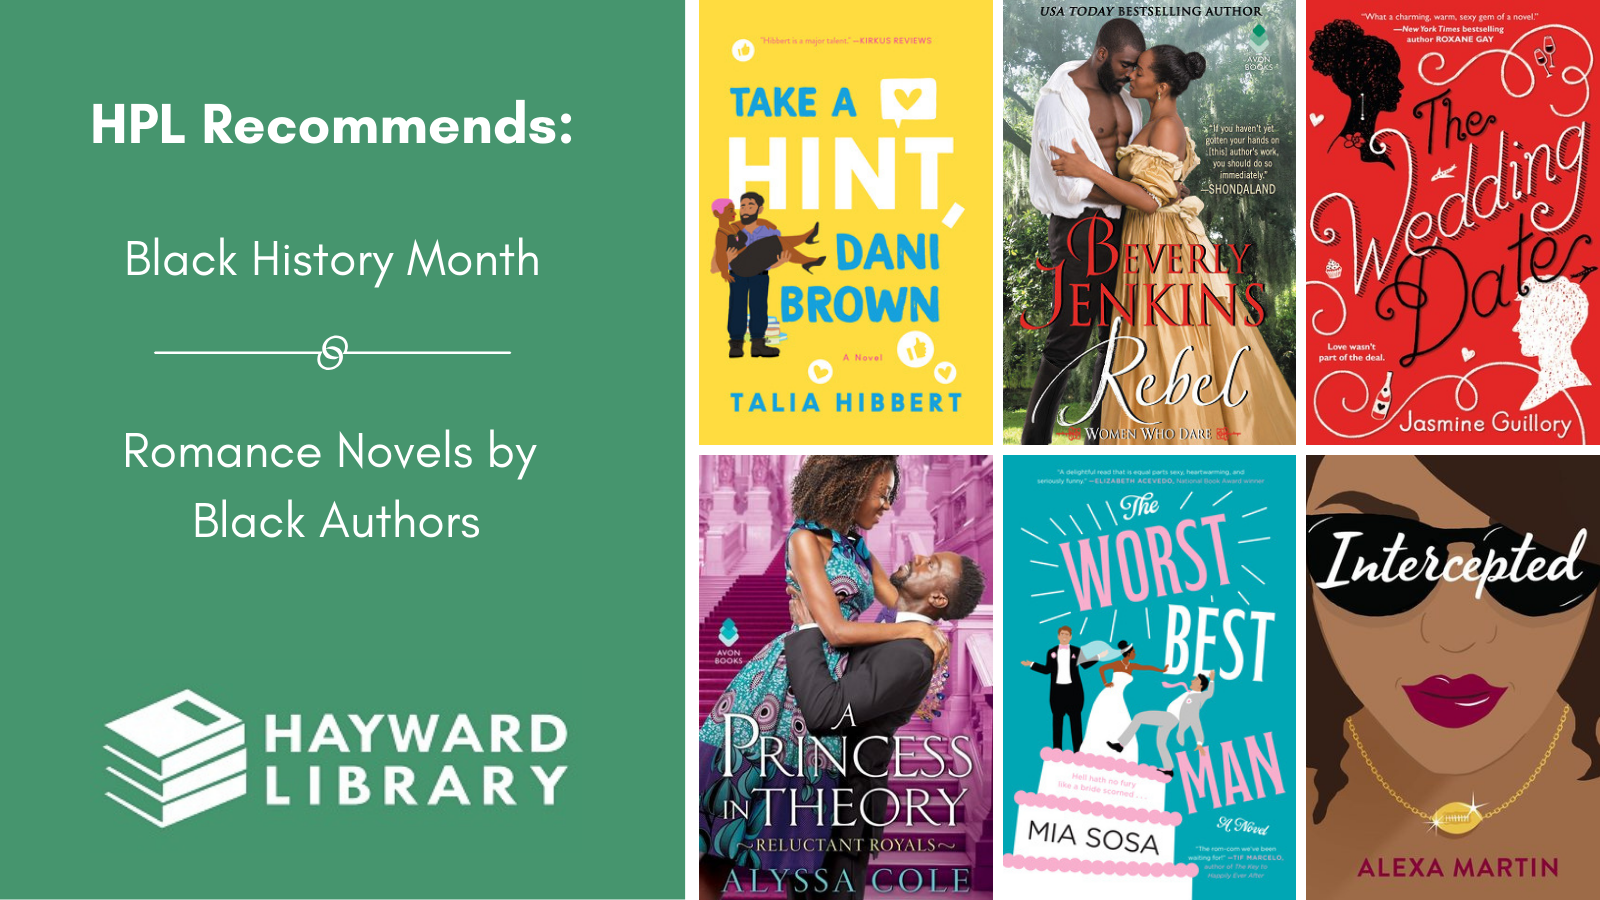 Collage of book covers with a green block on left side that says HPL Recommends, Black History Month, Romance Novels by Black Authors in white text, with Hayward Library logo below it.